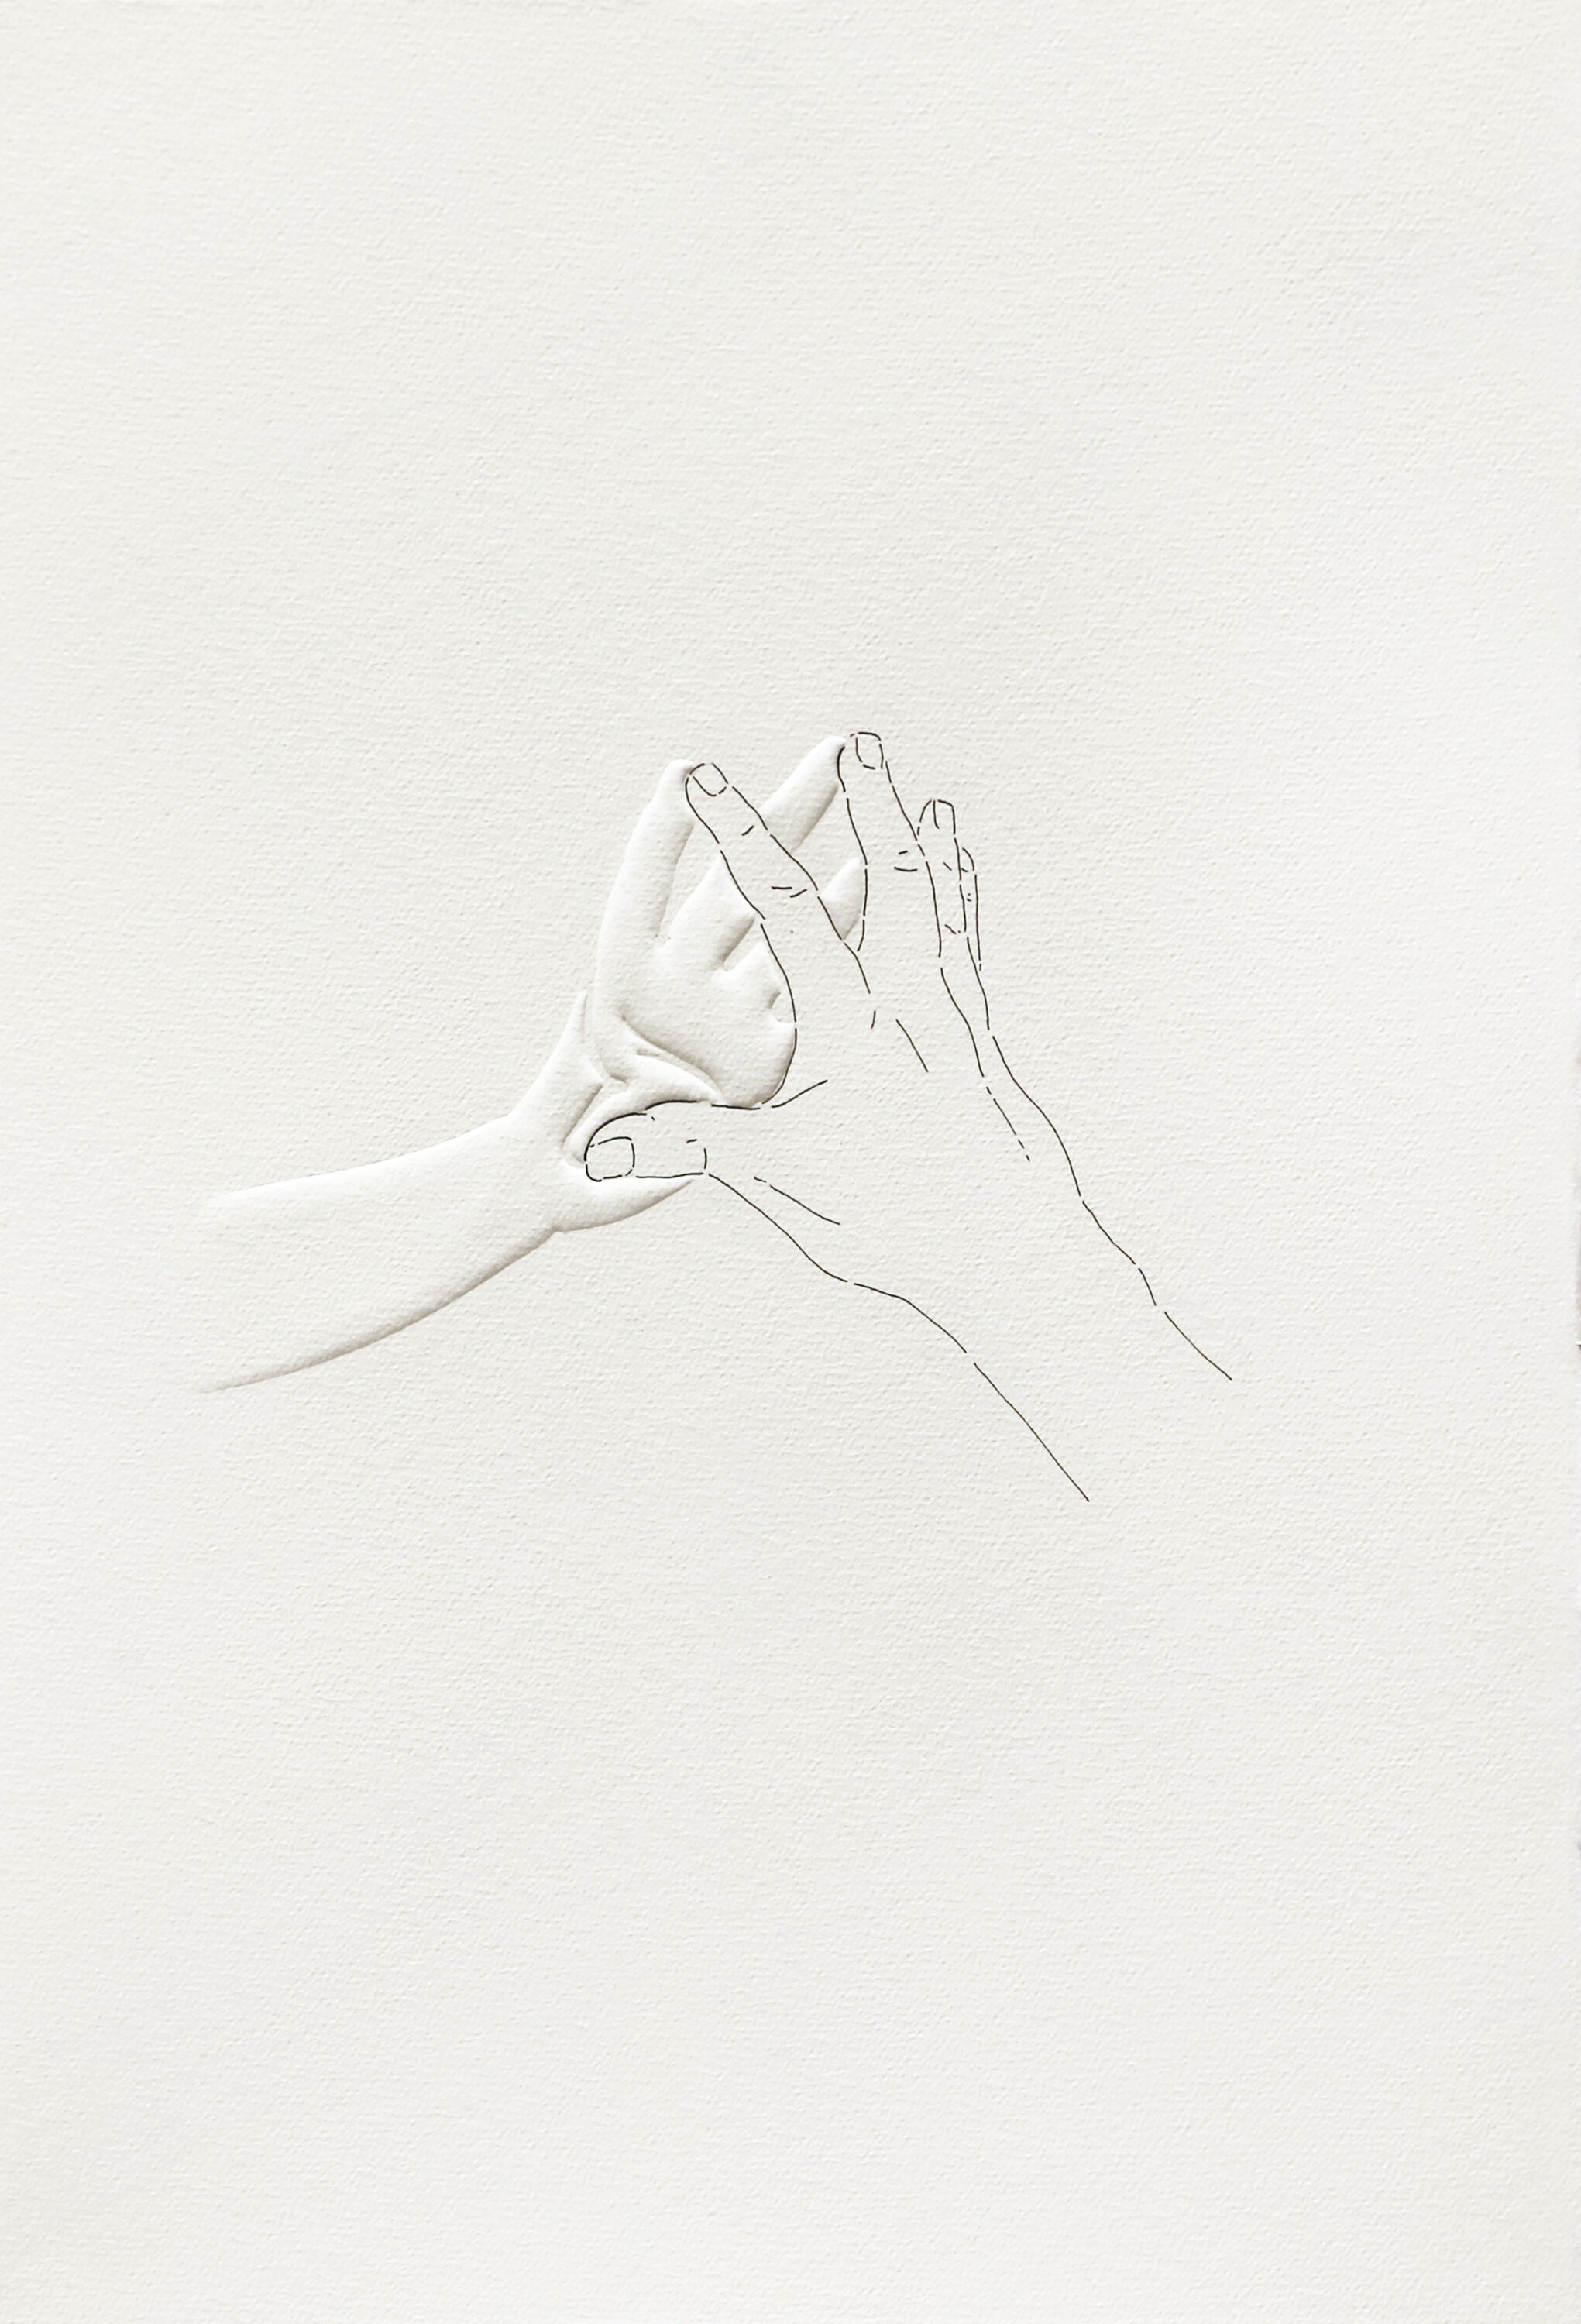 An image of two hands touching by their fingertips. The back of one hand is drawn on the paper and the palm of the other is embossed.